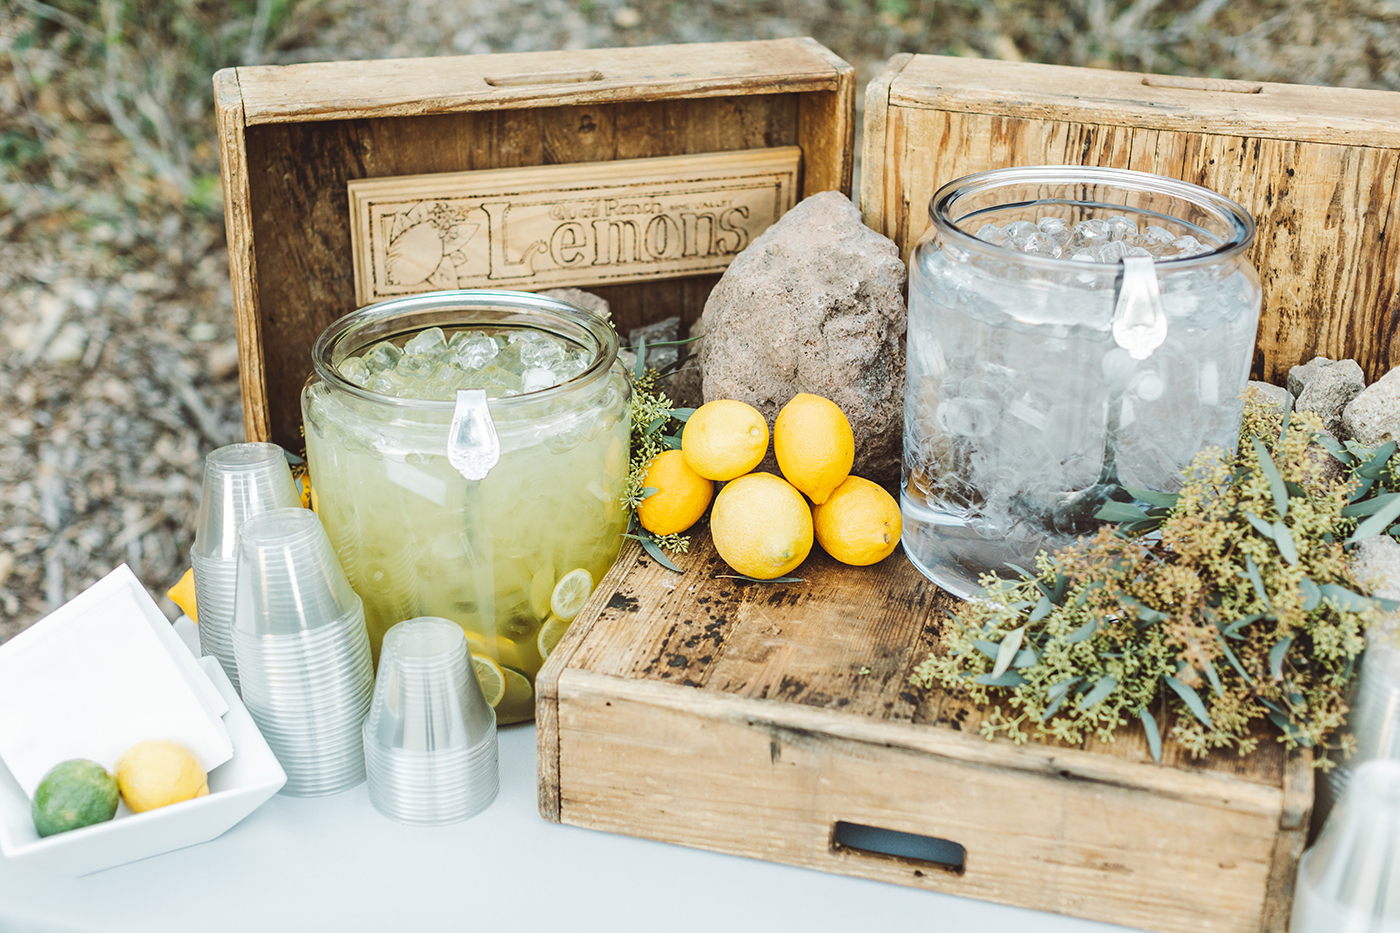 Lemonade Station